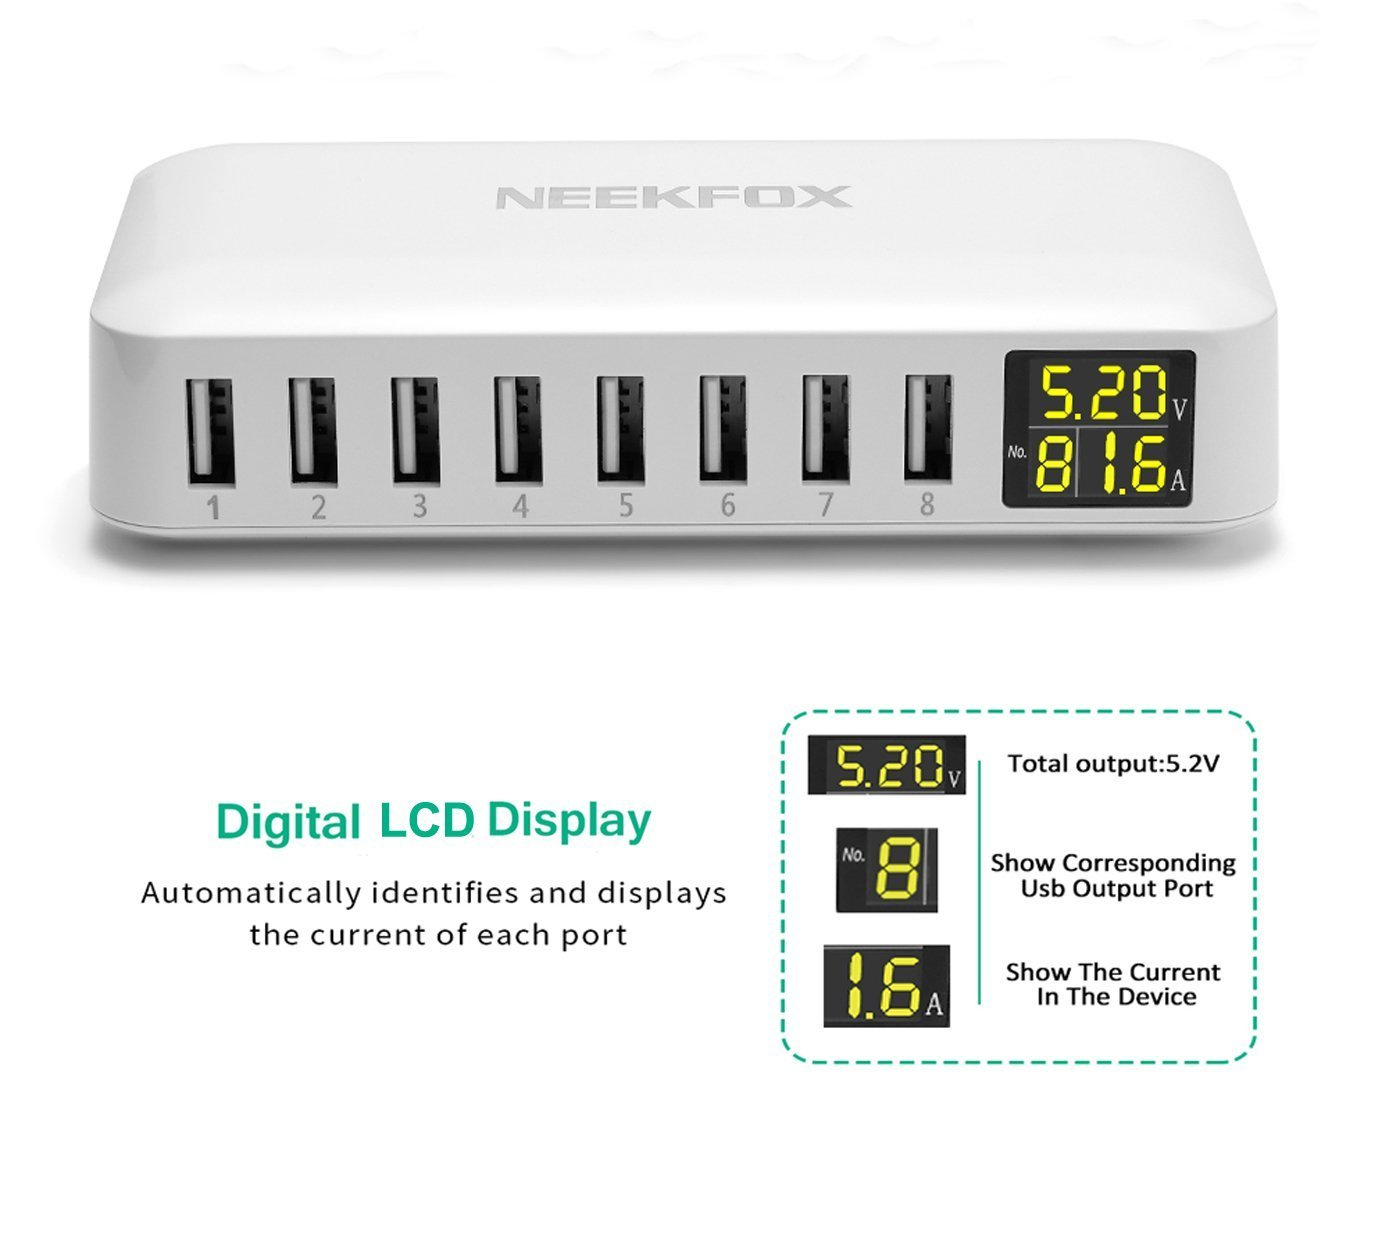 Multi USB Charger Charging Station iPad Samsung Galaxy//Note and More Desktop USB Station Compatible iPhone X // 8//7 // 7Plus // 6s // 6Plus NEEKFOX 8-Port USB Charger Station with LCD Display